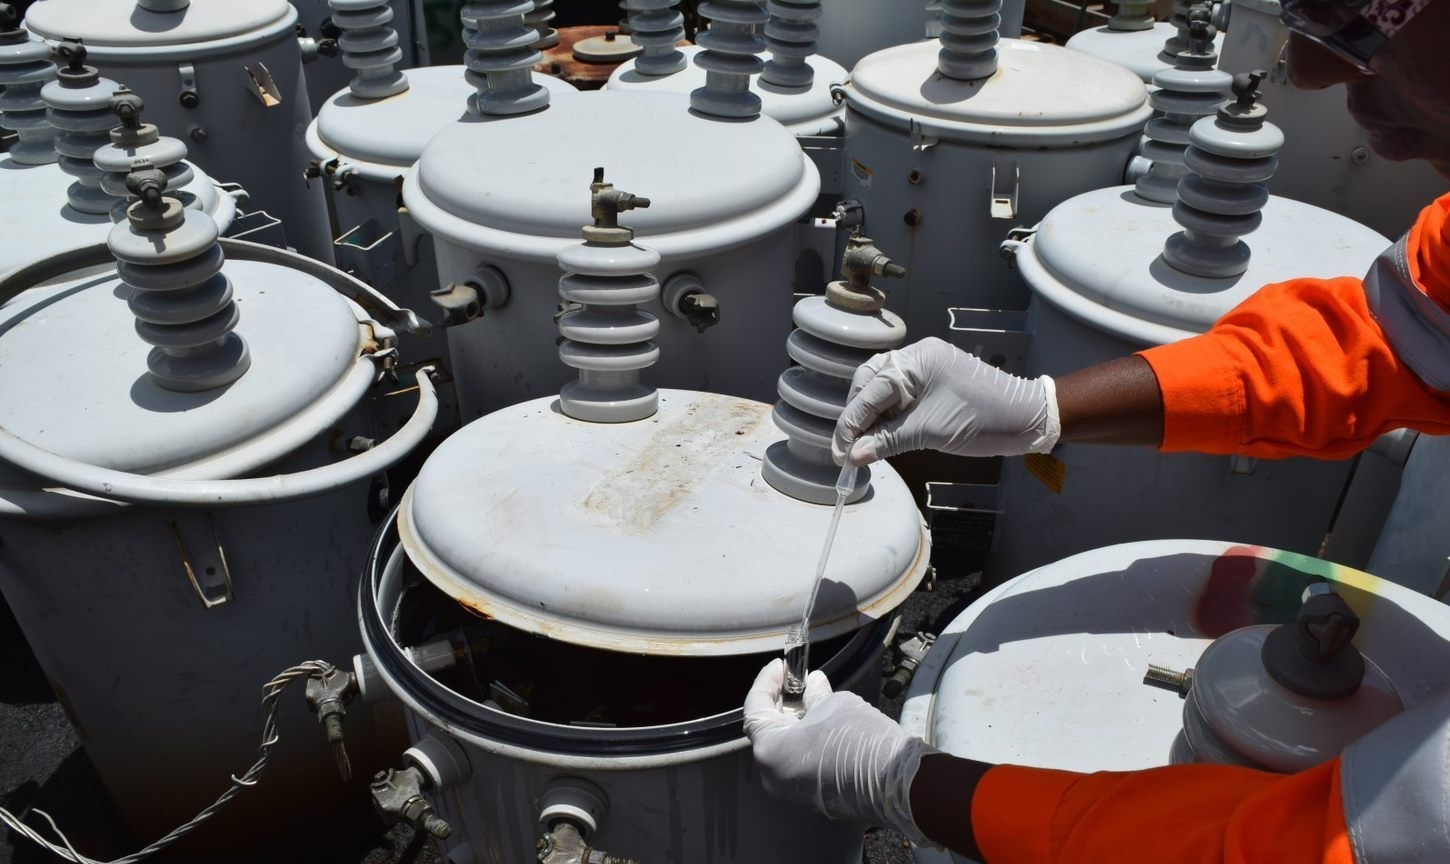 Moving the waste and chemicals management agenda forward in the Caribbean